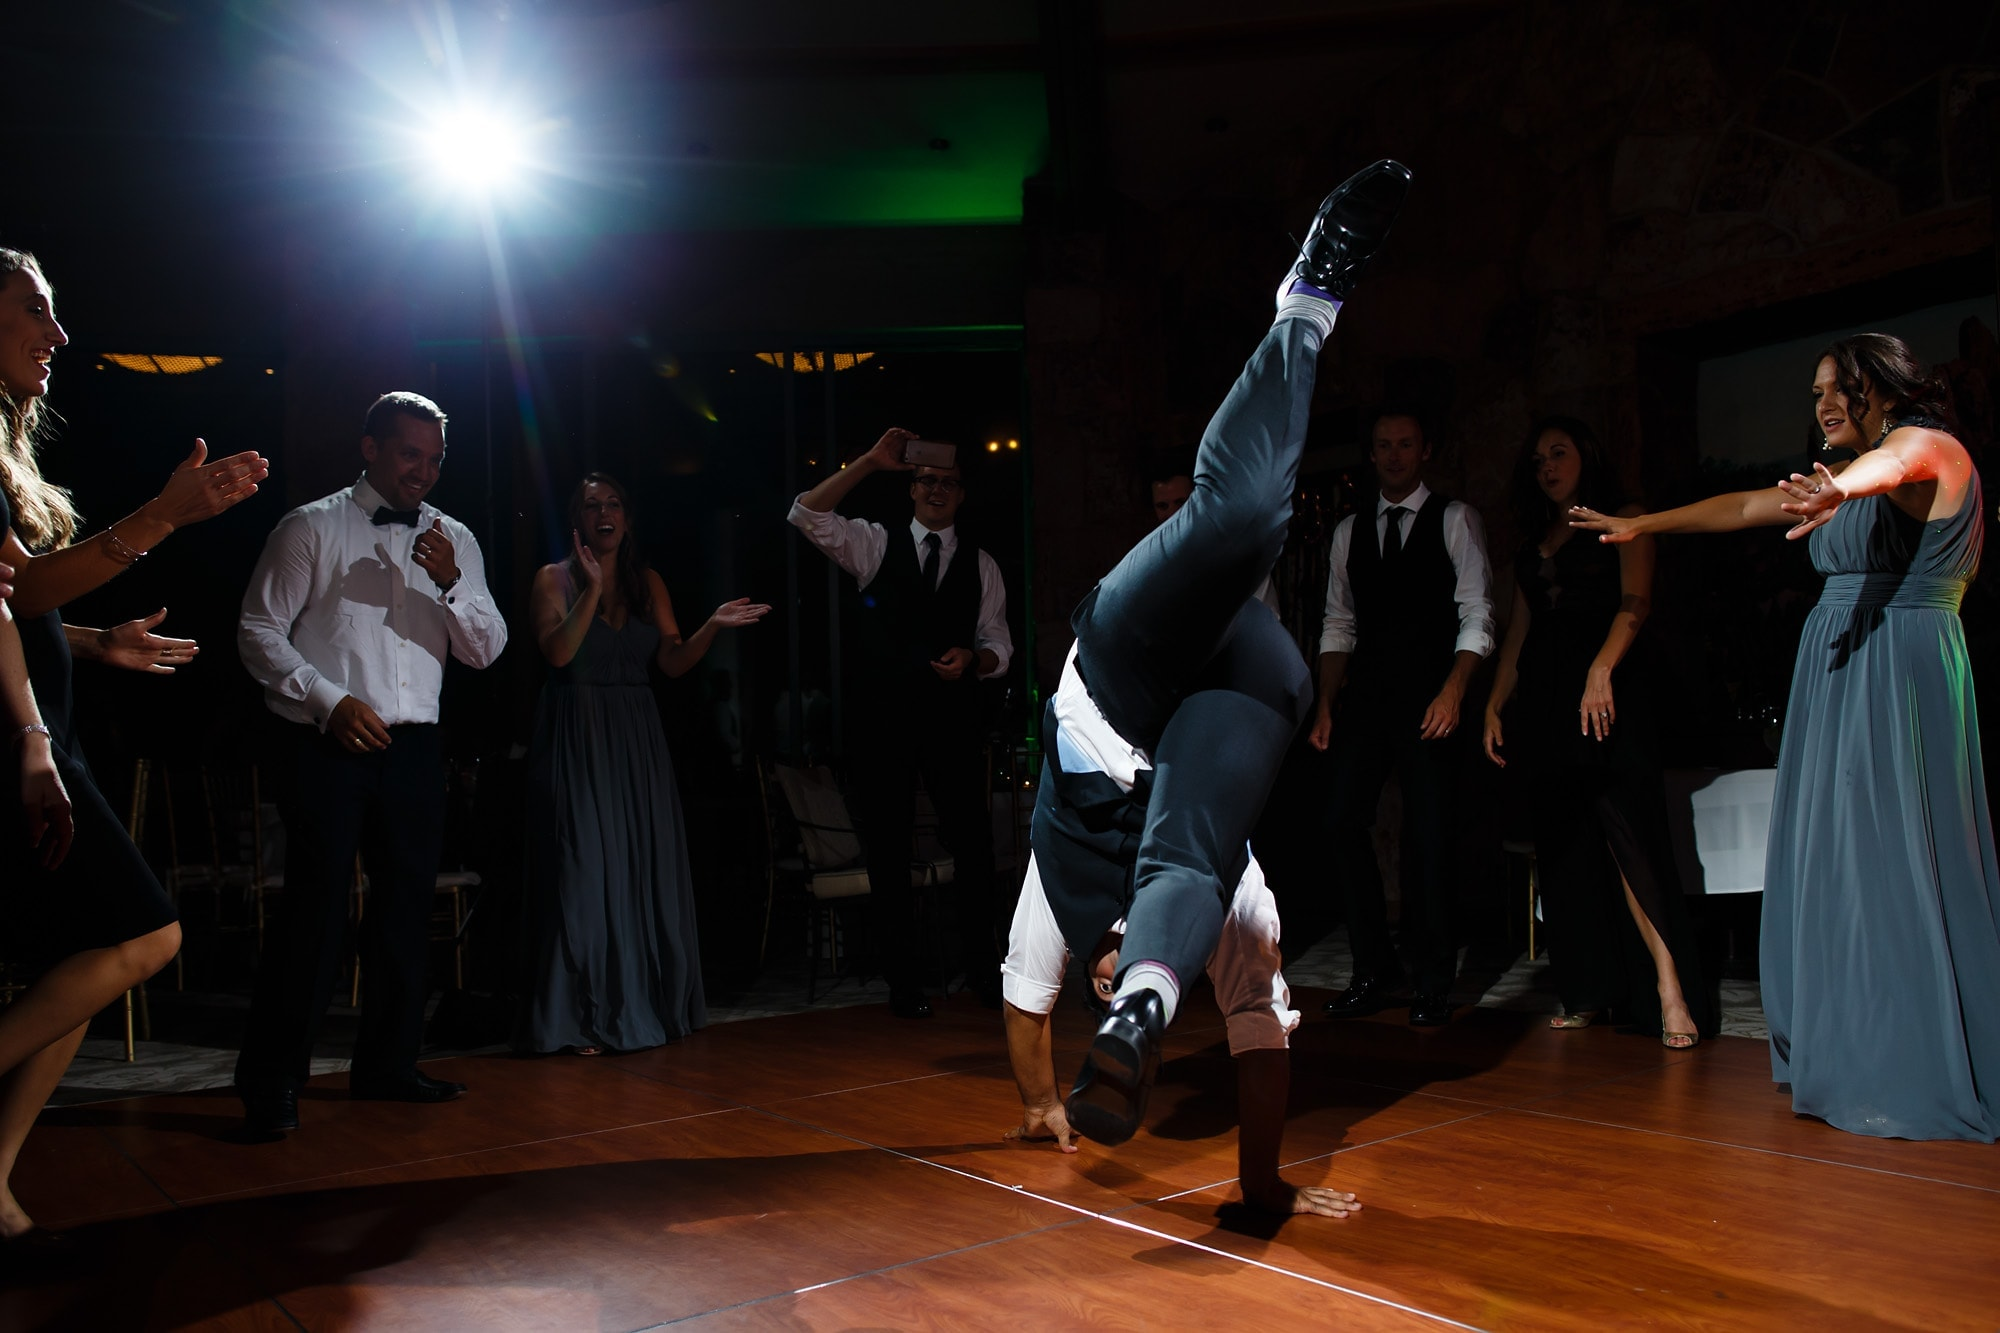 Break dancing during the reception at Garden of the Gods Club for Joshua and Devan's wedding